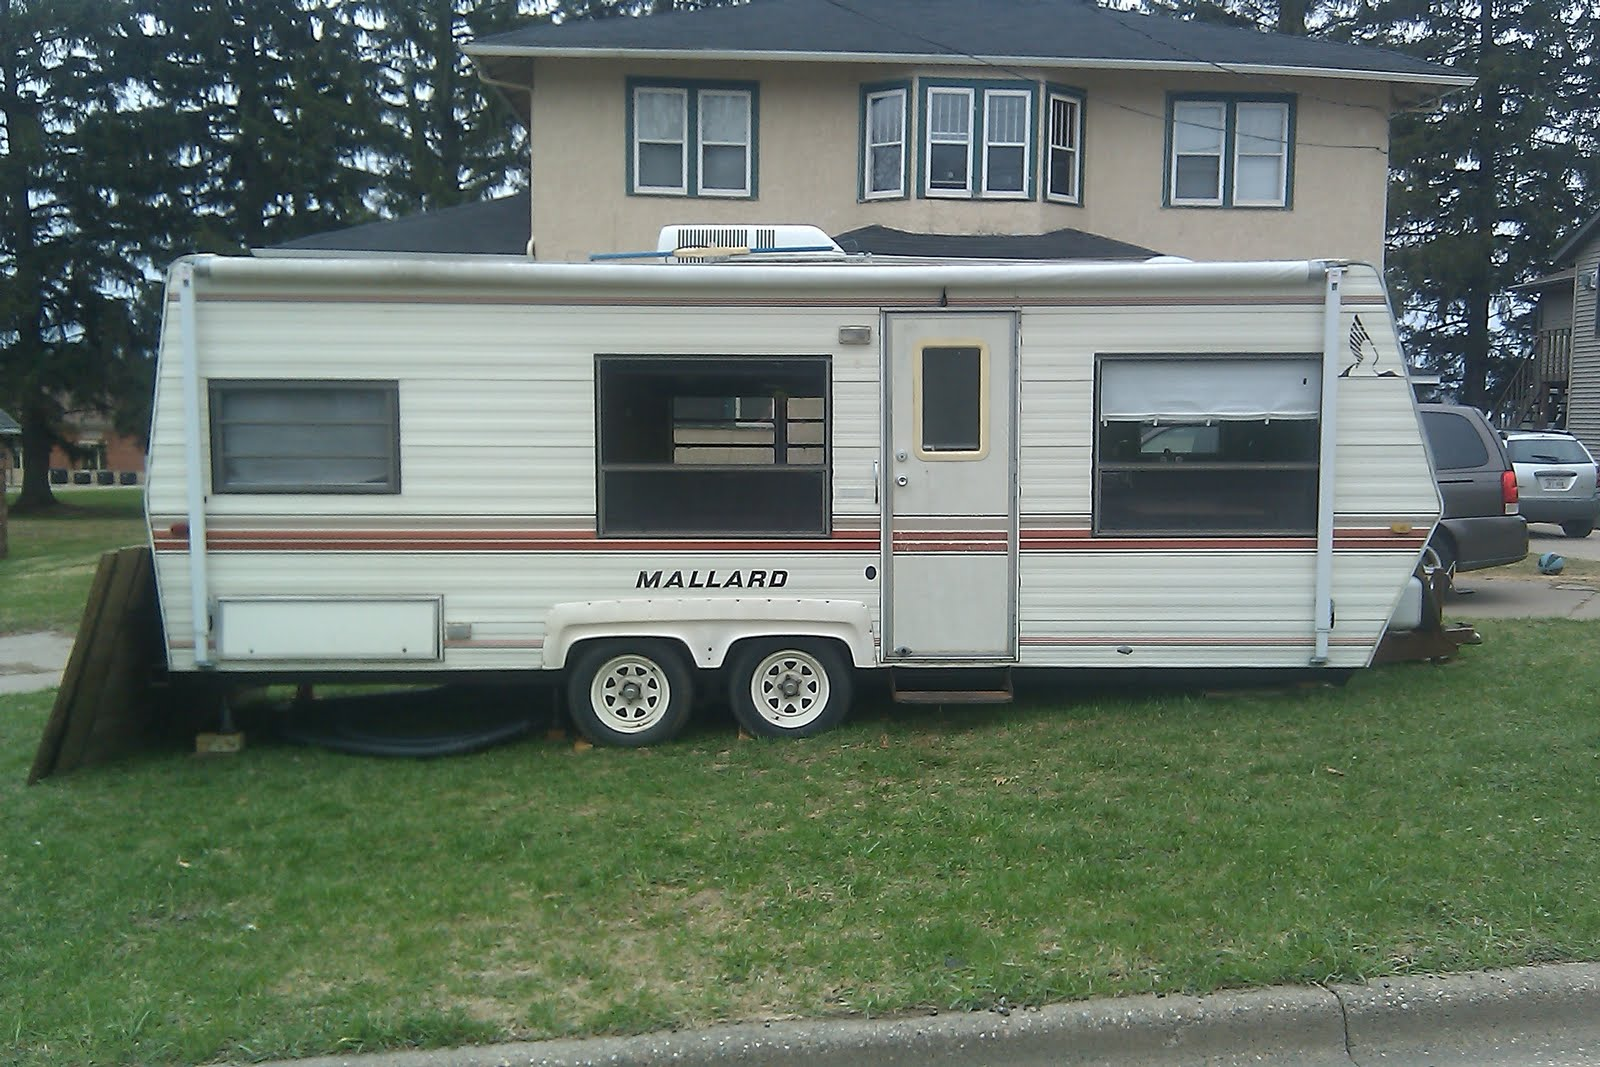 Remodeling Our 85 Mallard Camper TrailerDIY Rookies Making A Go Of It